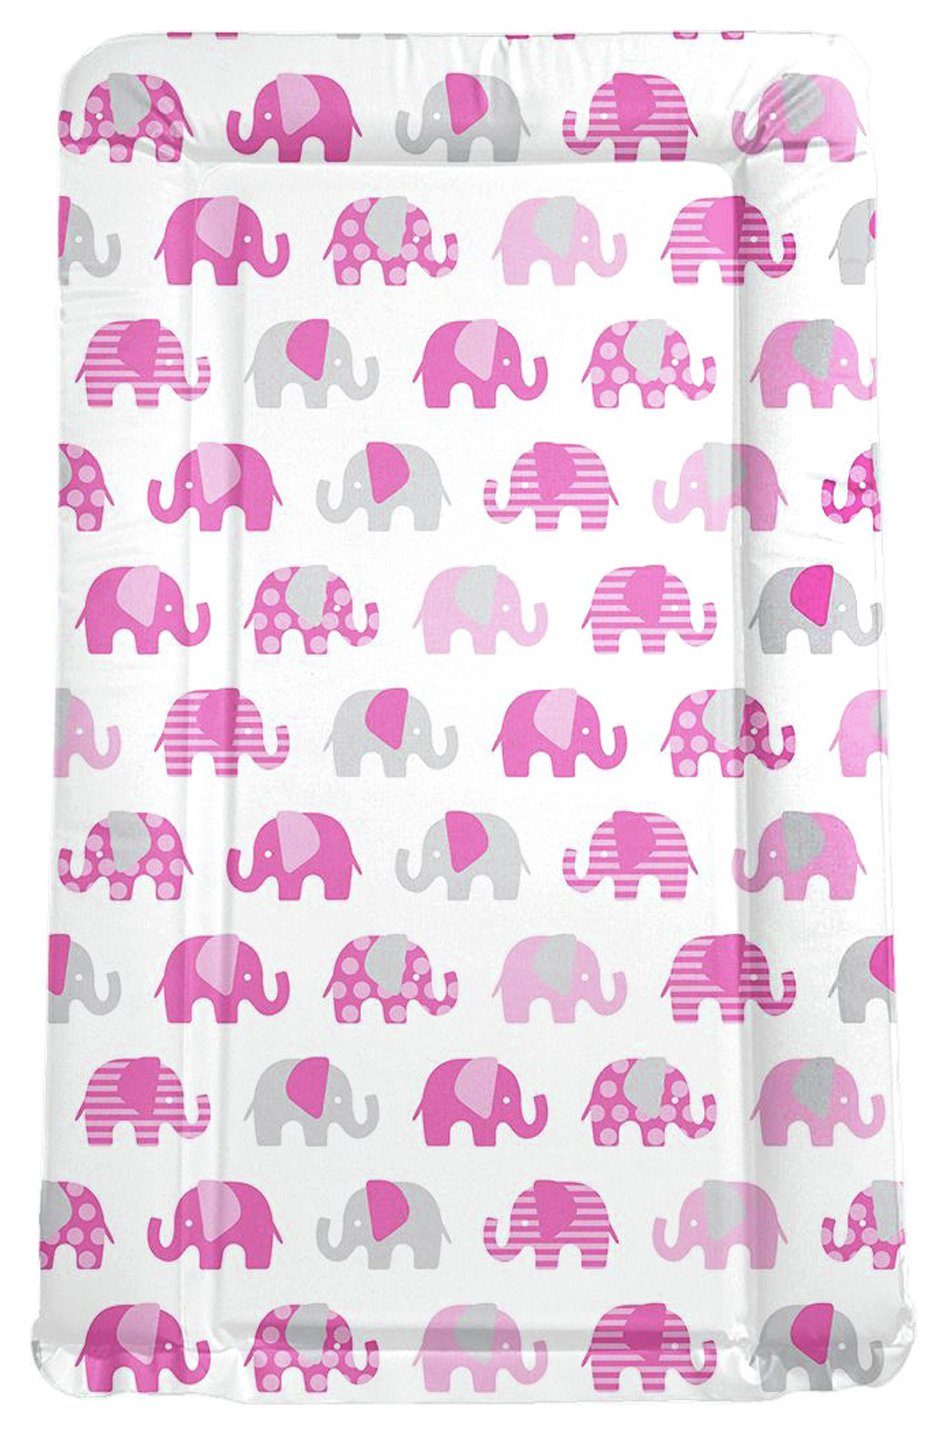 Image of My Babiie - Billie Faiers Pink Nelly Elephant - Changing Mat